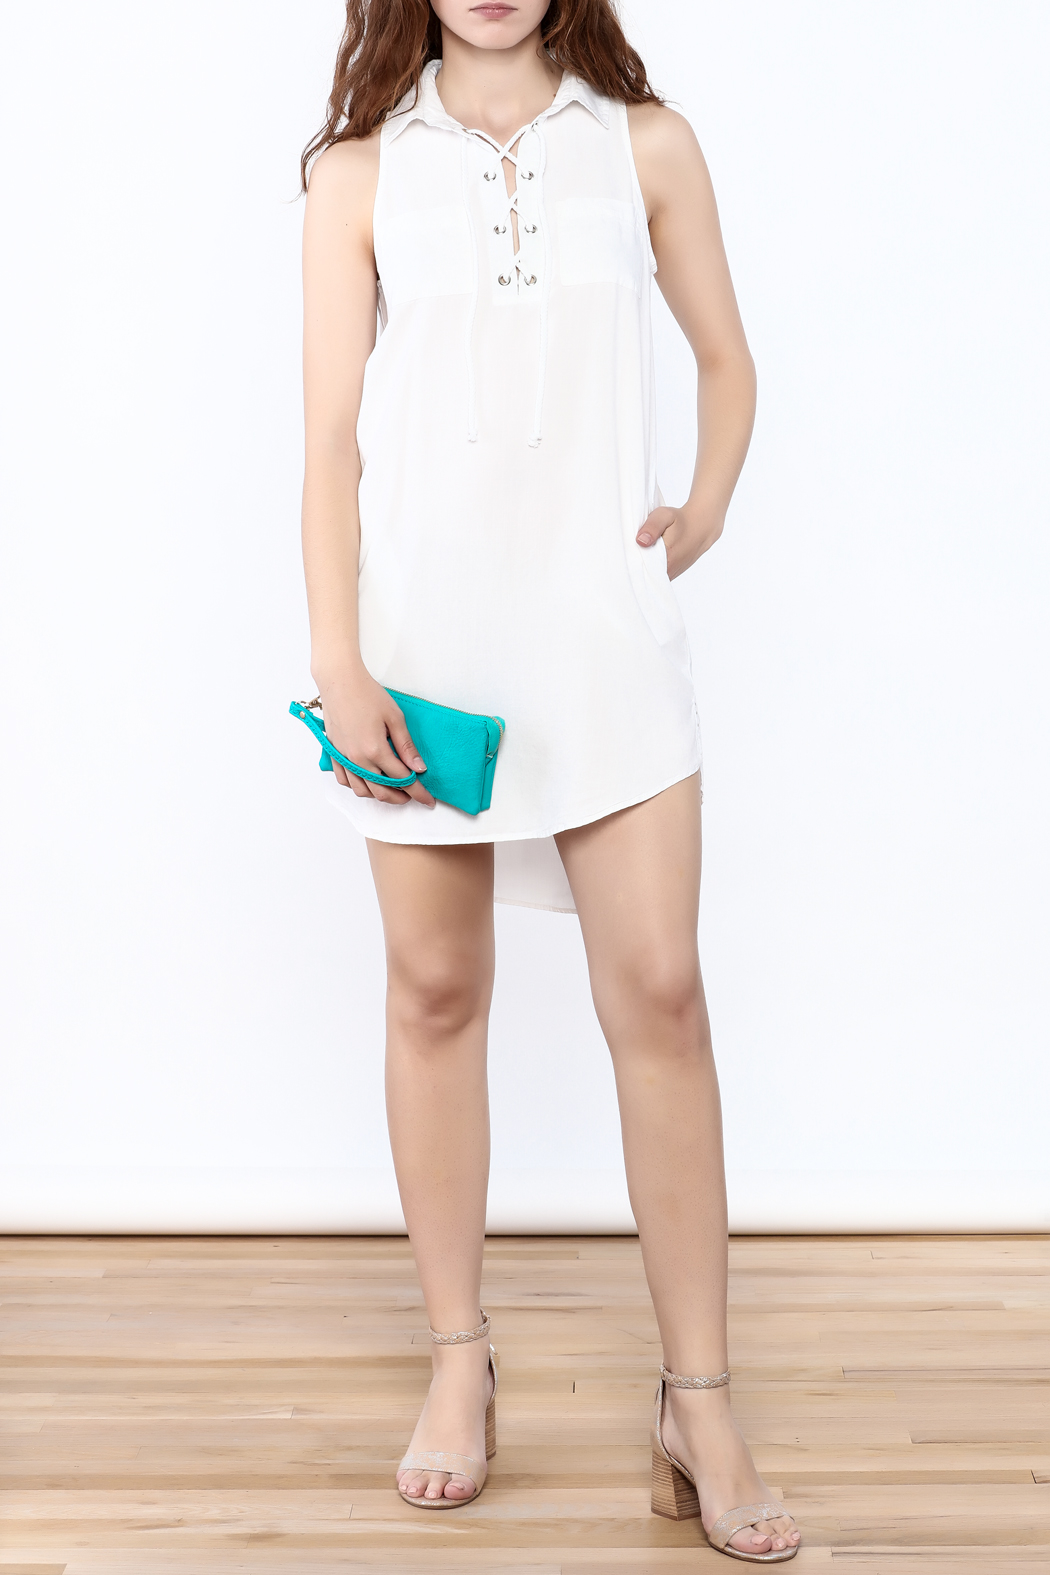 Velvet Heart White Sleeveless Dress - Front Full Image